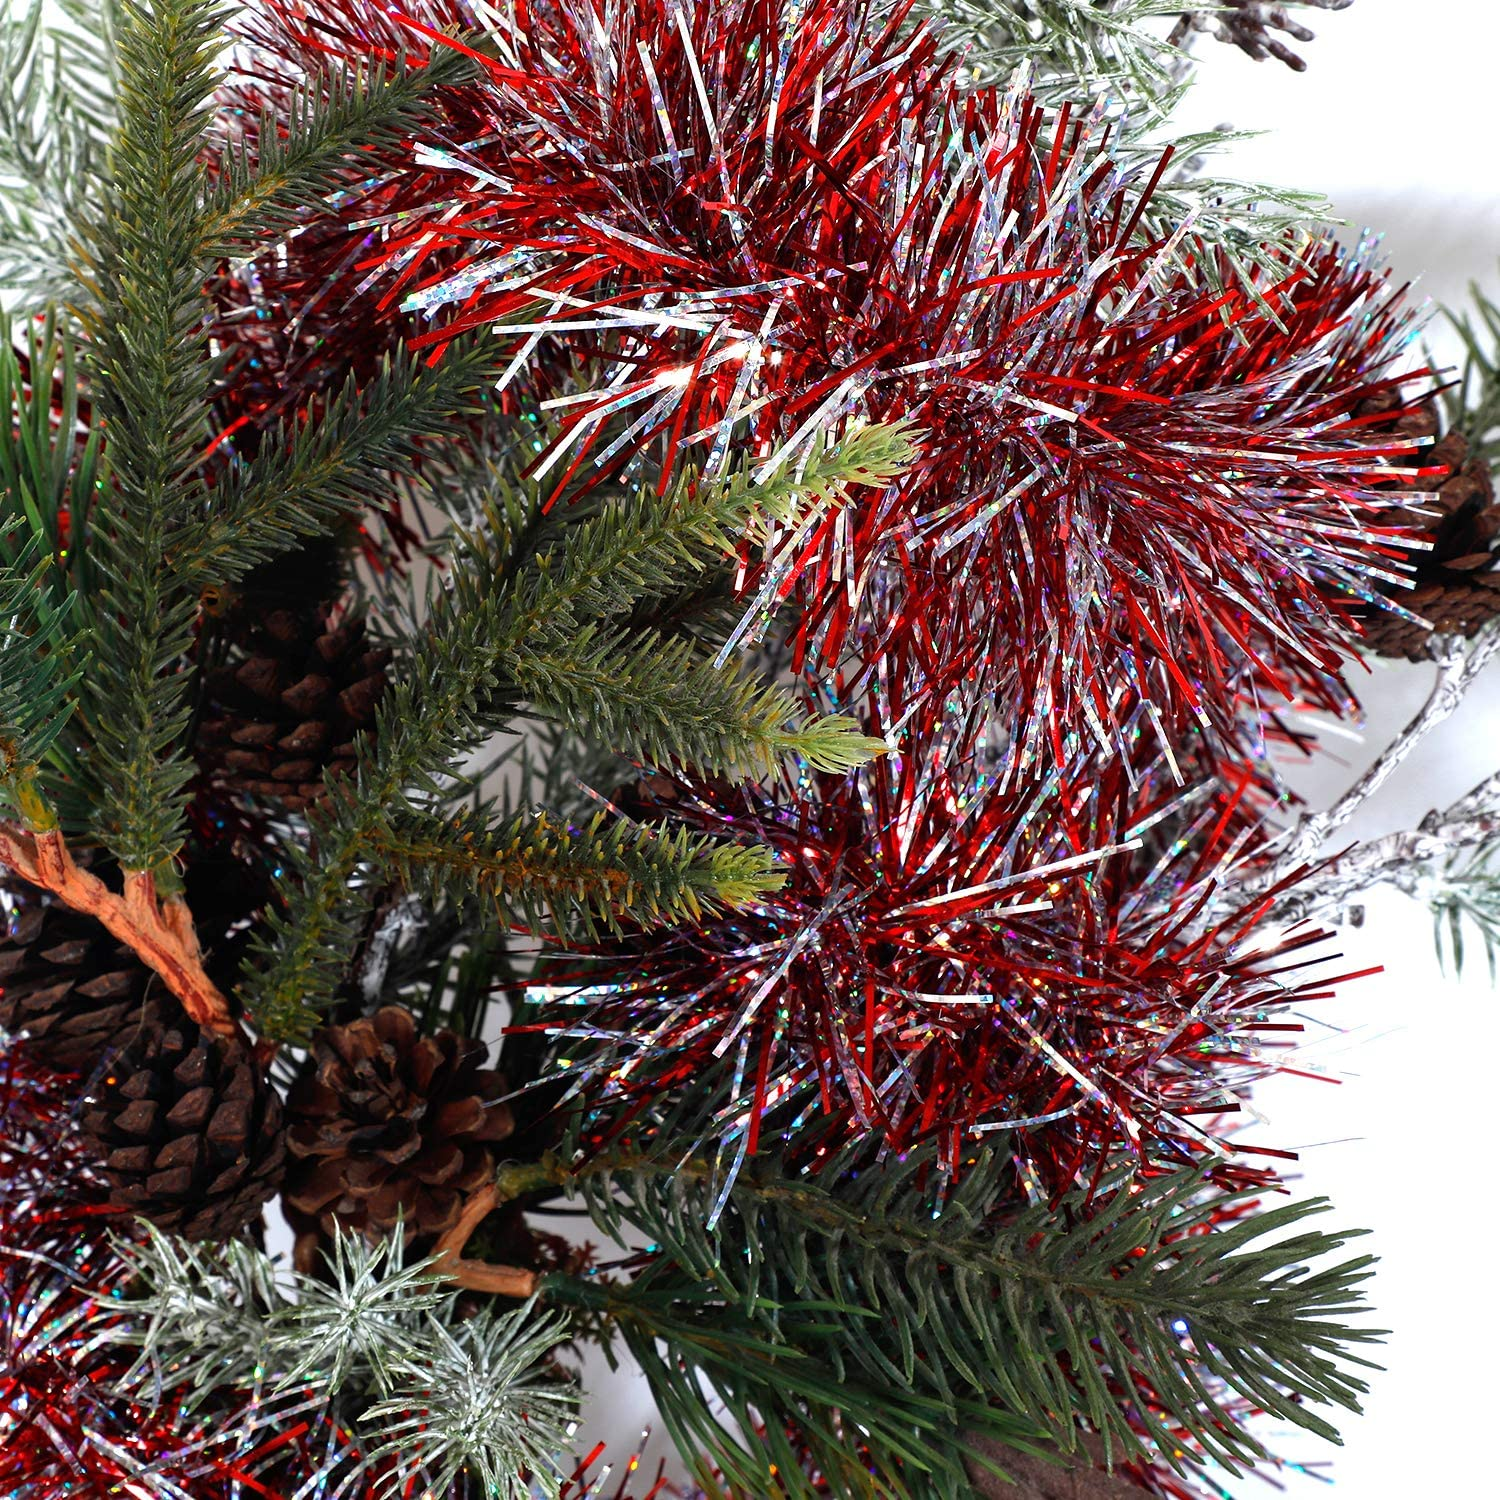 Christmas Tree Ornaments Home Party Classic Shiny Sparkly Ceiling Hanging Decorations,3.6 inch Wide Filaments Red. Alonsoo 3Pcs x 6.6ft Christmas Tinsel Garland